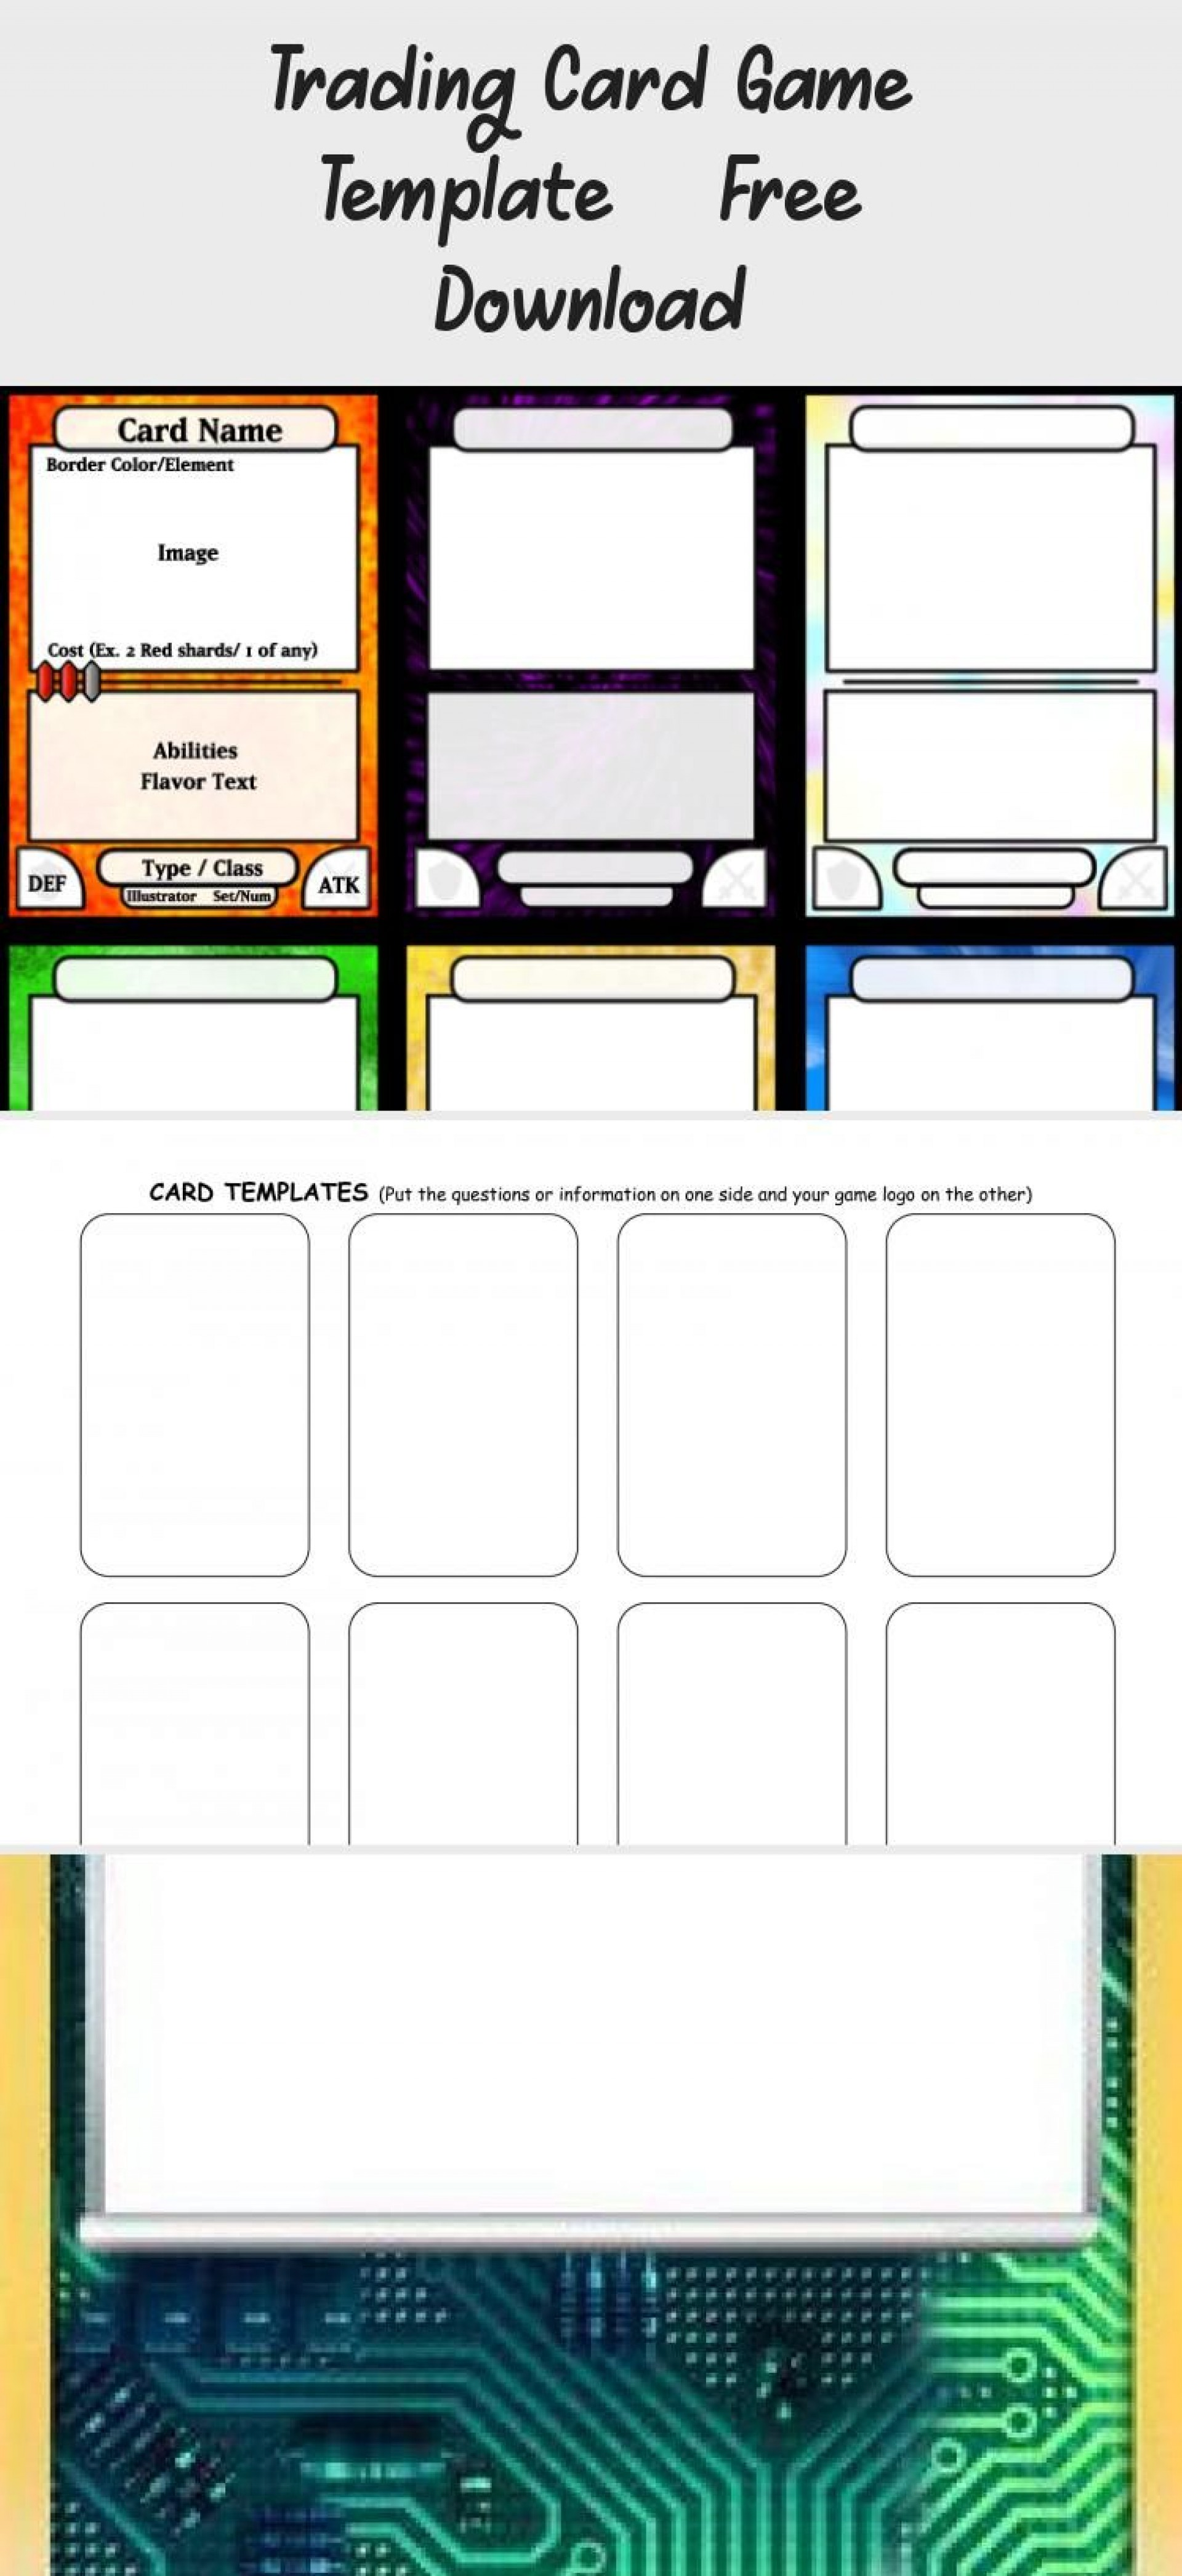 002 Incredible Trading Card Template Free Design  Maker Online1920